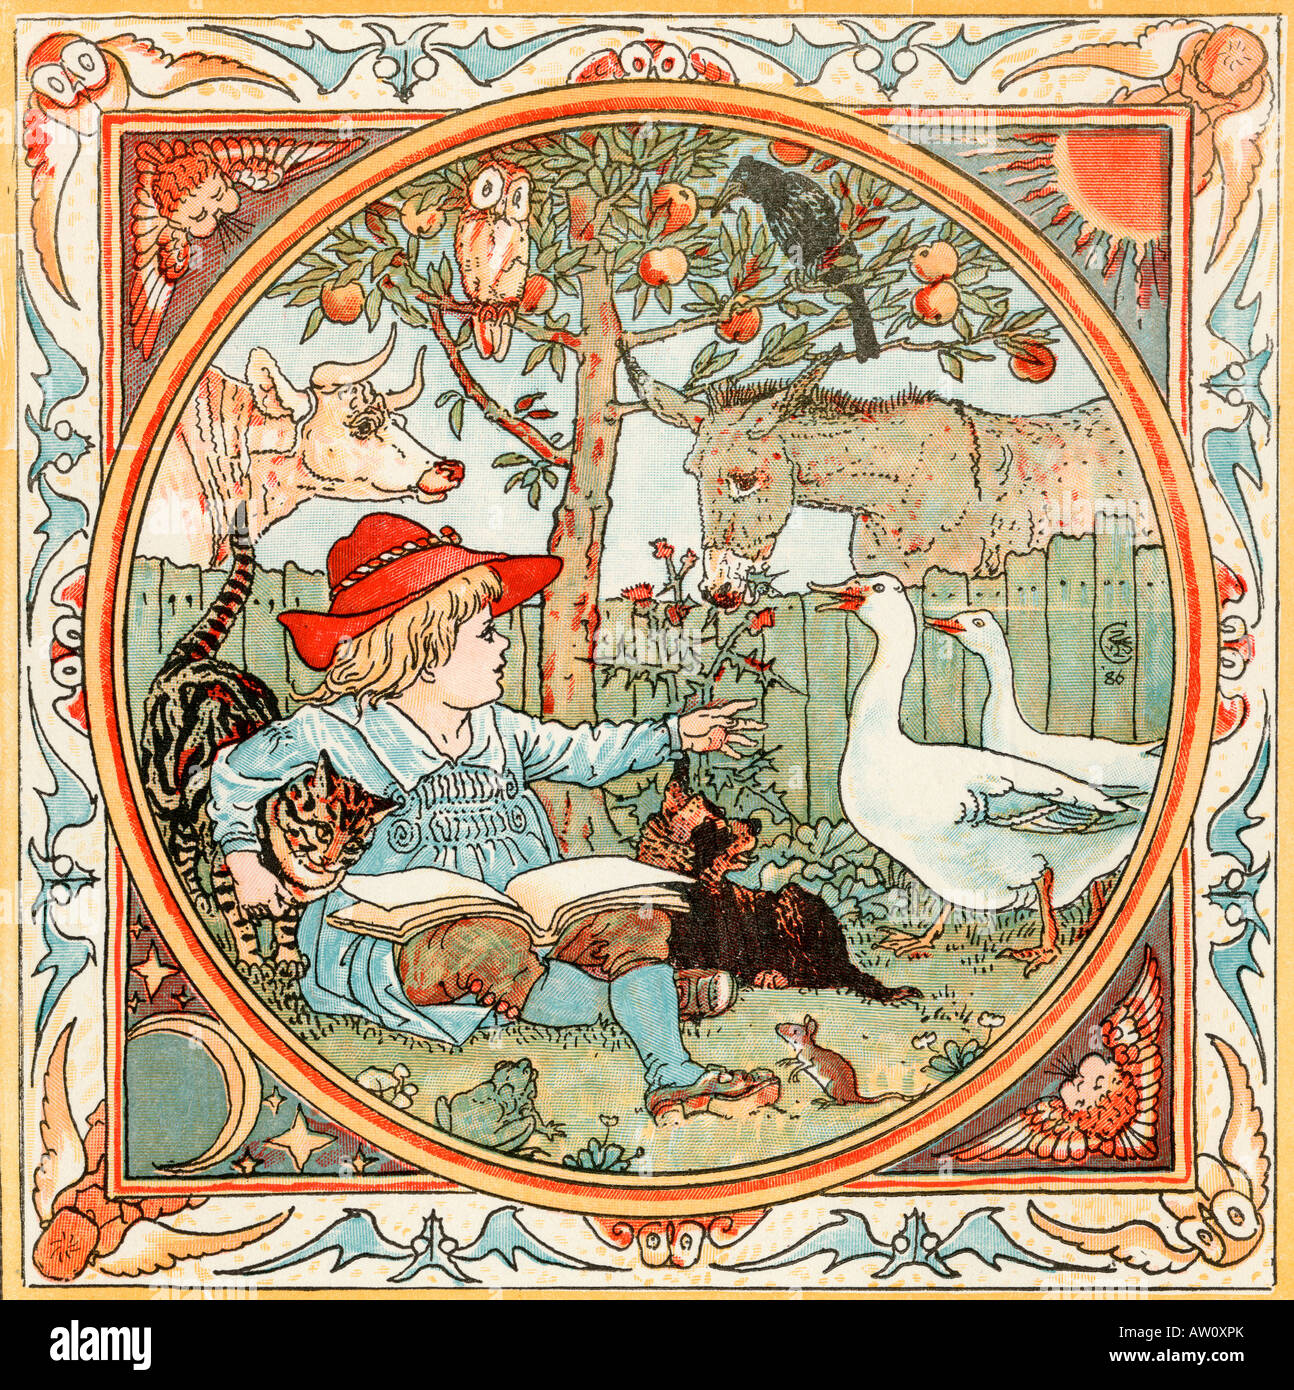 Frontispiece From the book The Babys Own Aesop by Walter Crane published c1920 - Stock Image